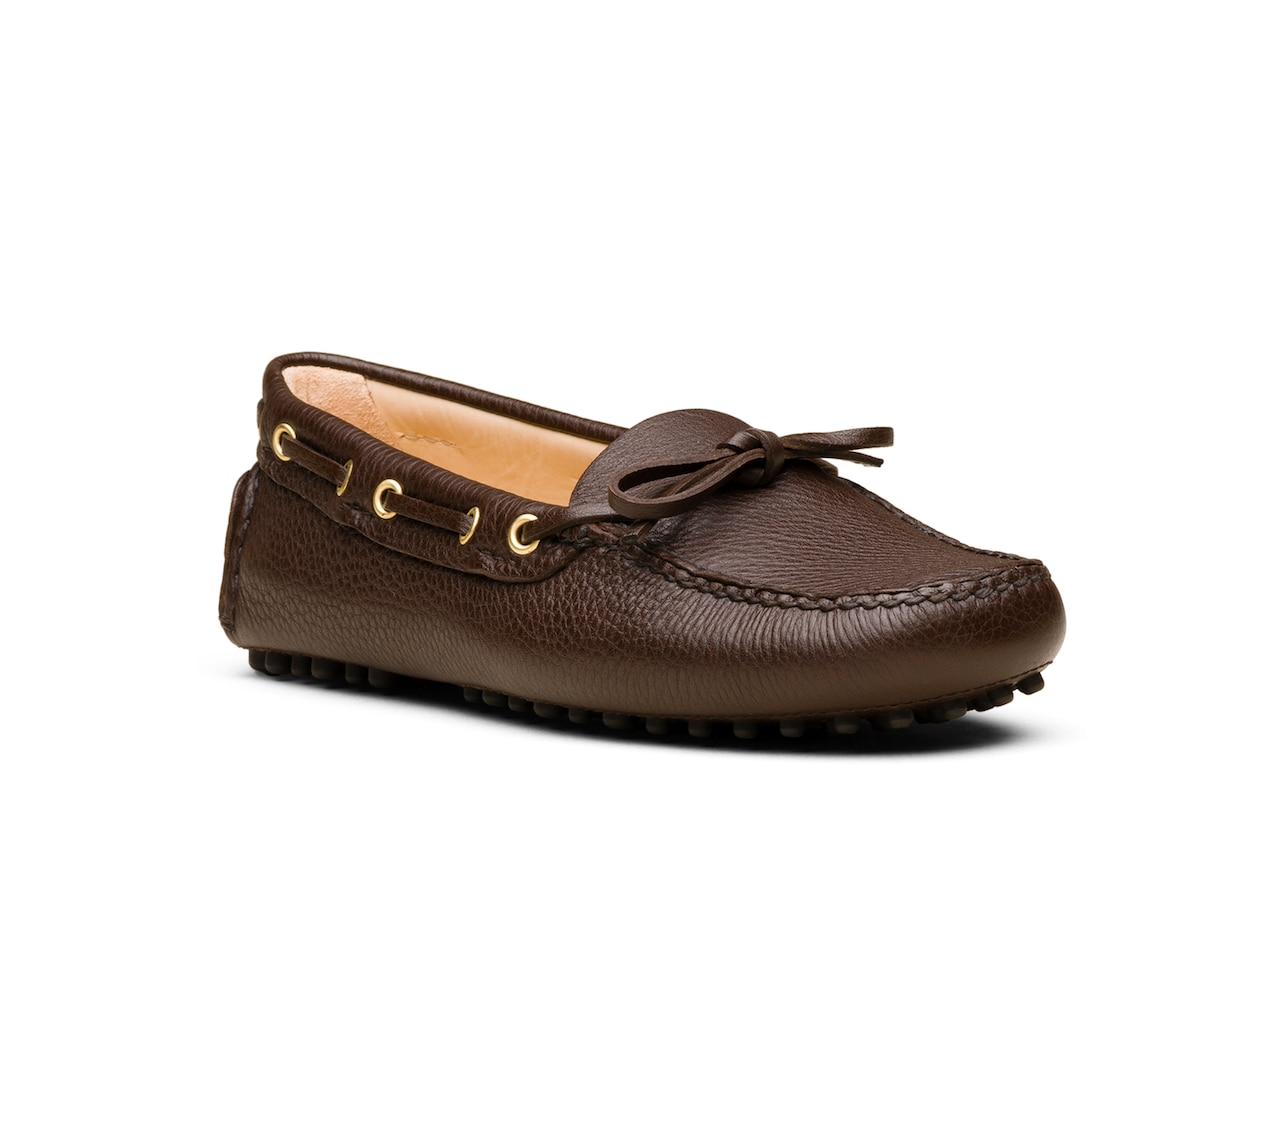 DEERSKIN DRIVING SHOES BROWN